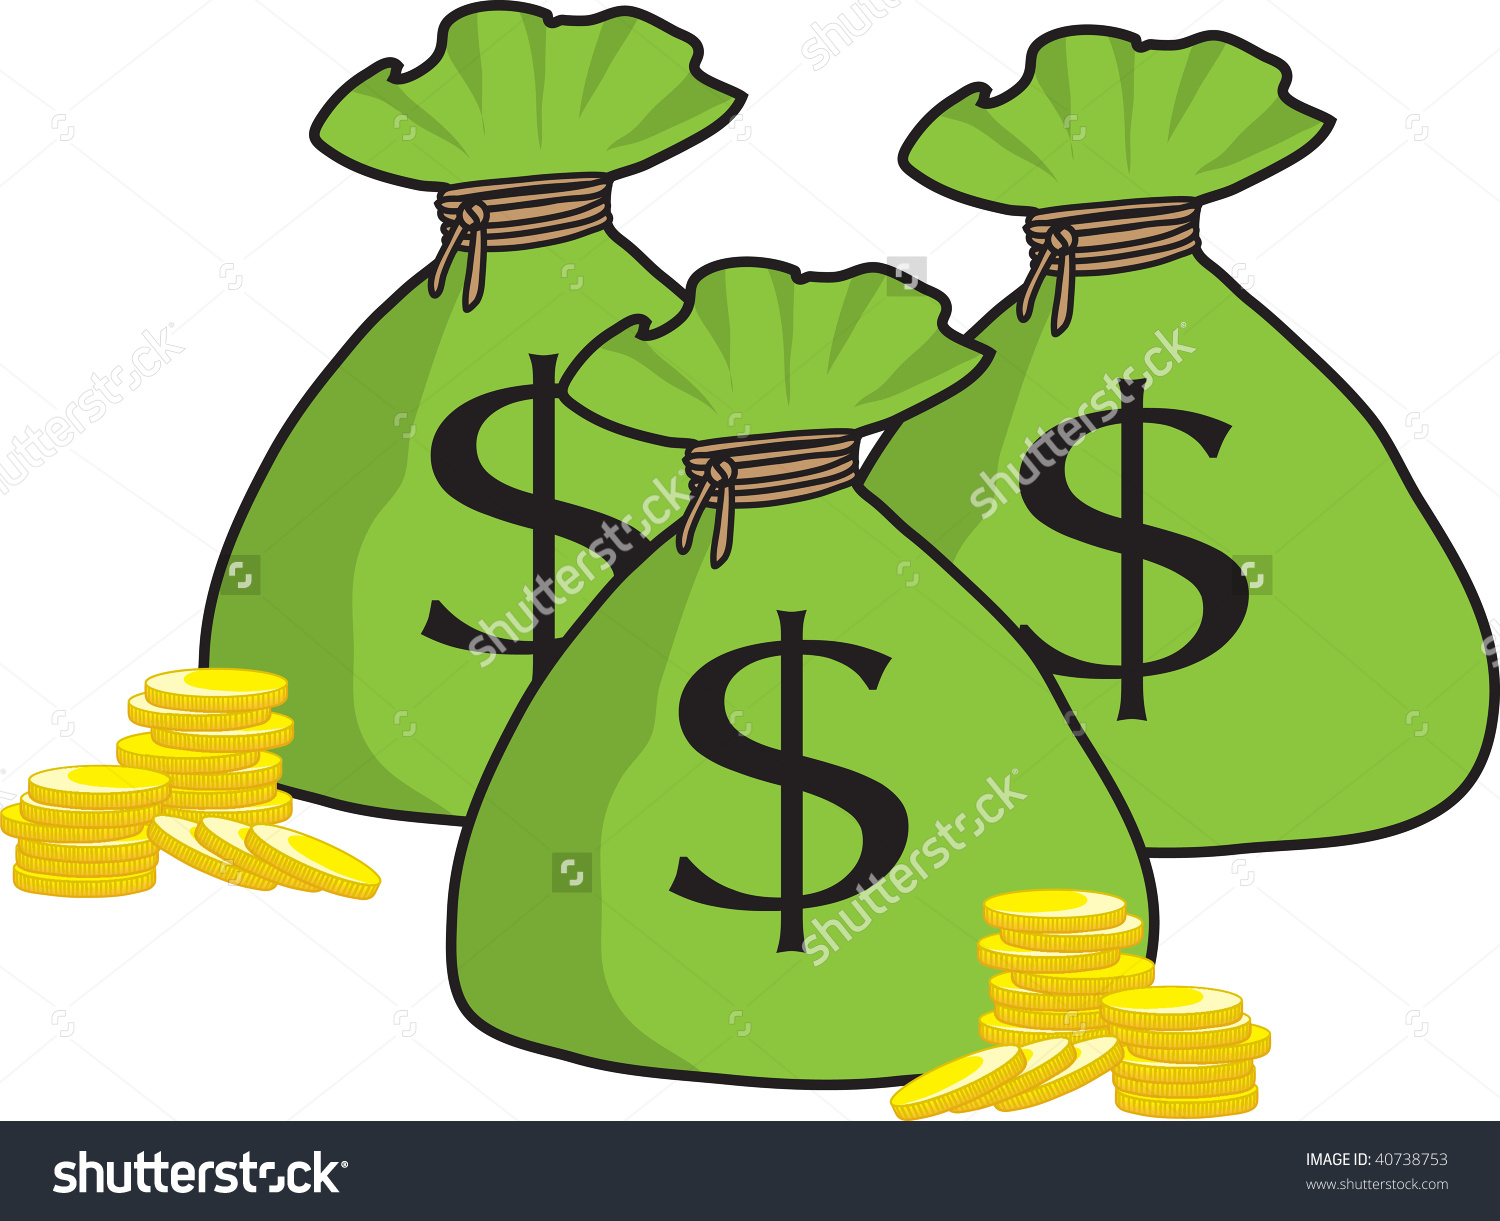 clipart illustration of a bunch of money bags with golden coins